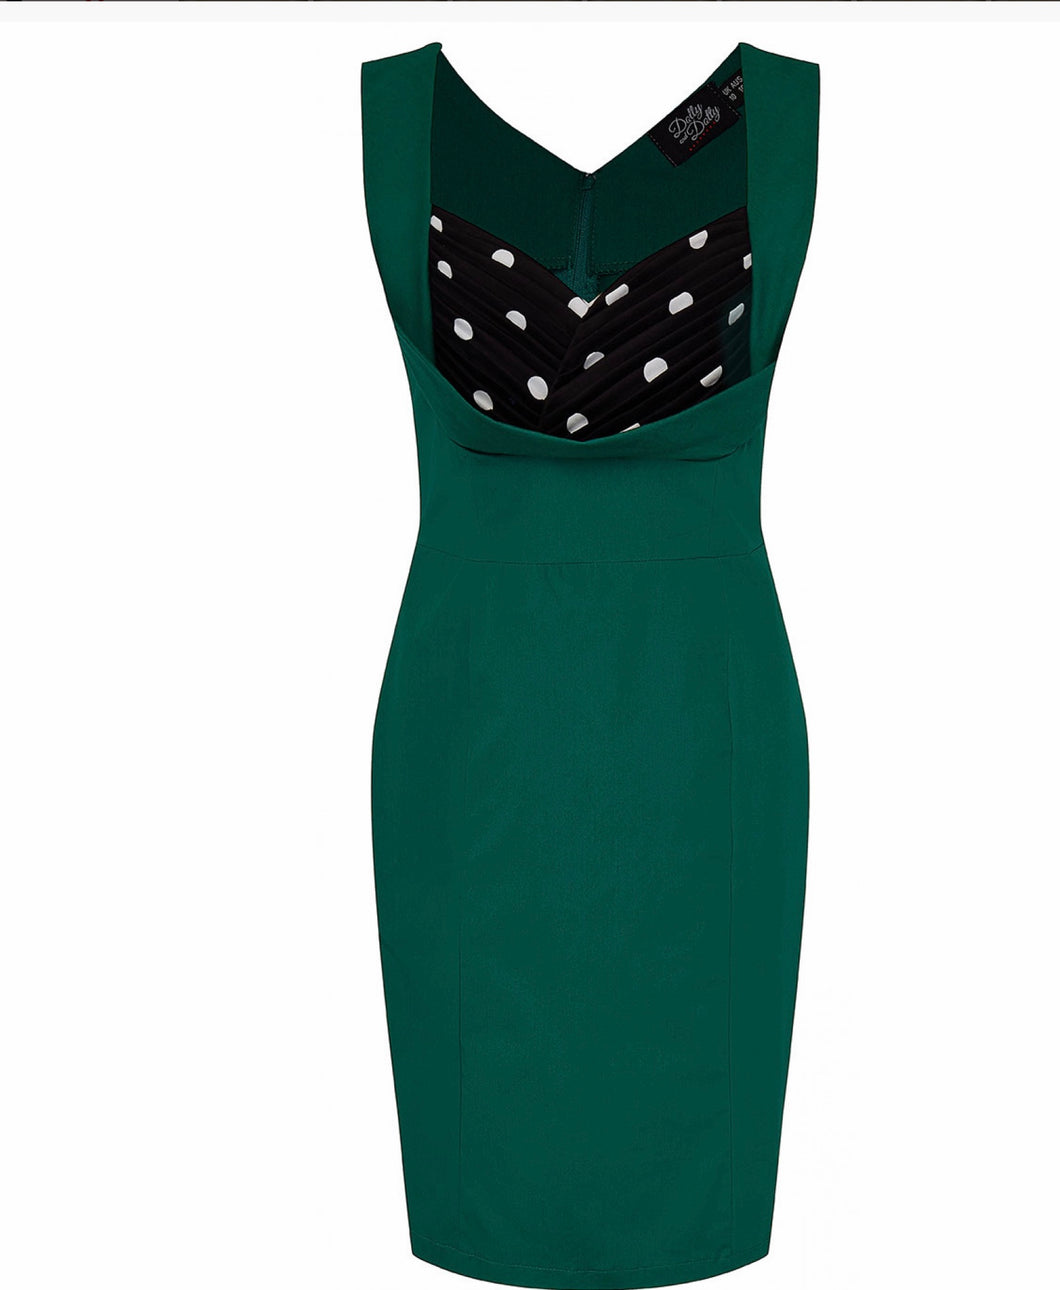 Ruffle wiggle dress - Isabel's Retro & Vintage Clothing